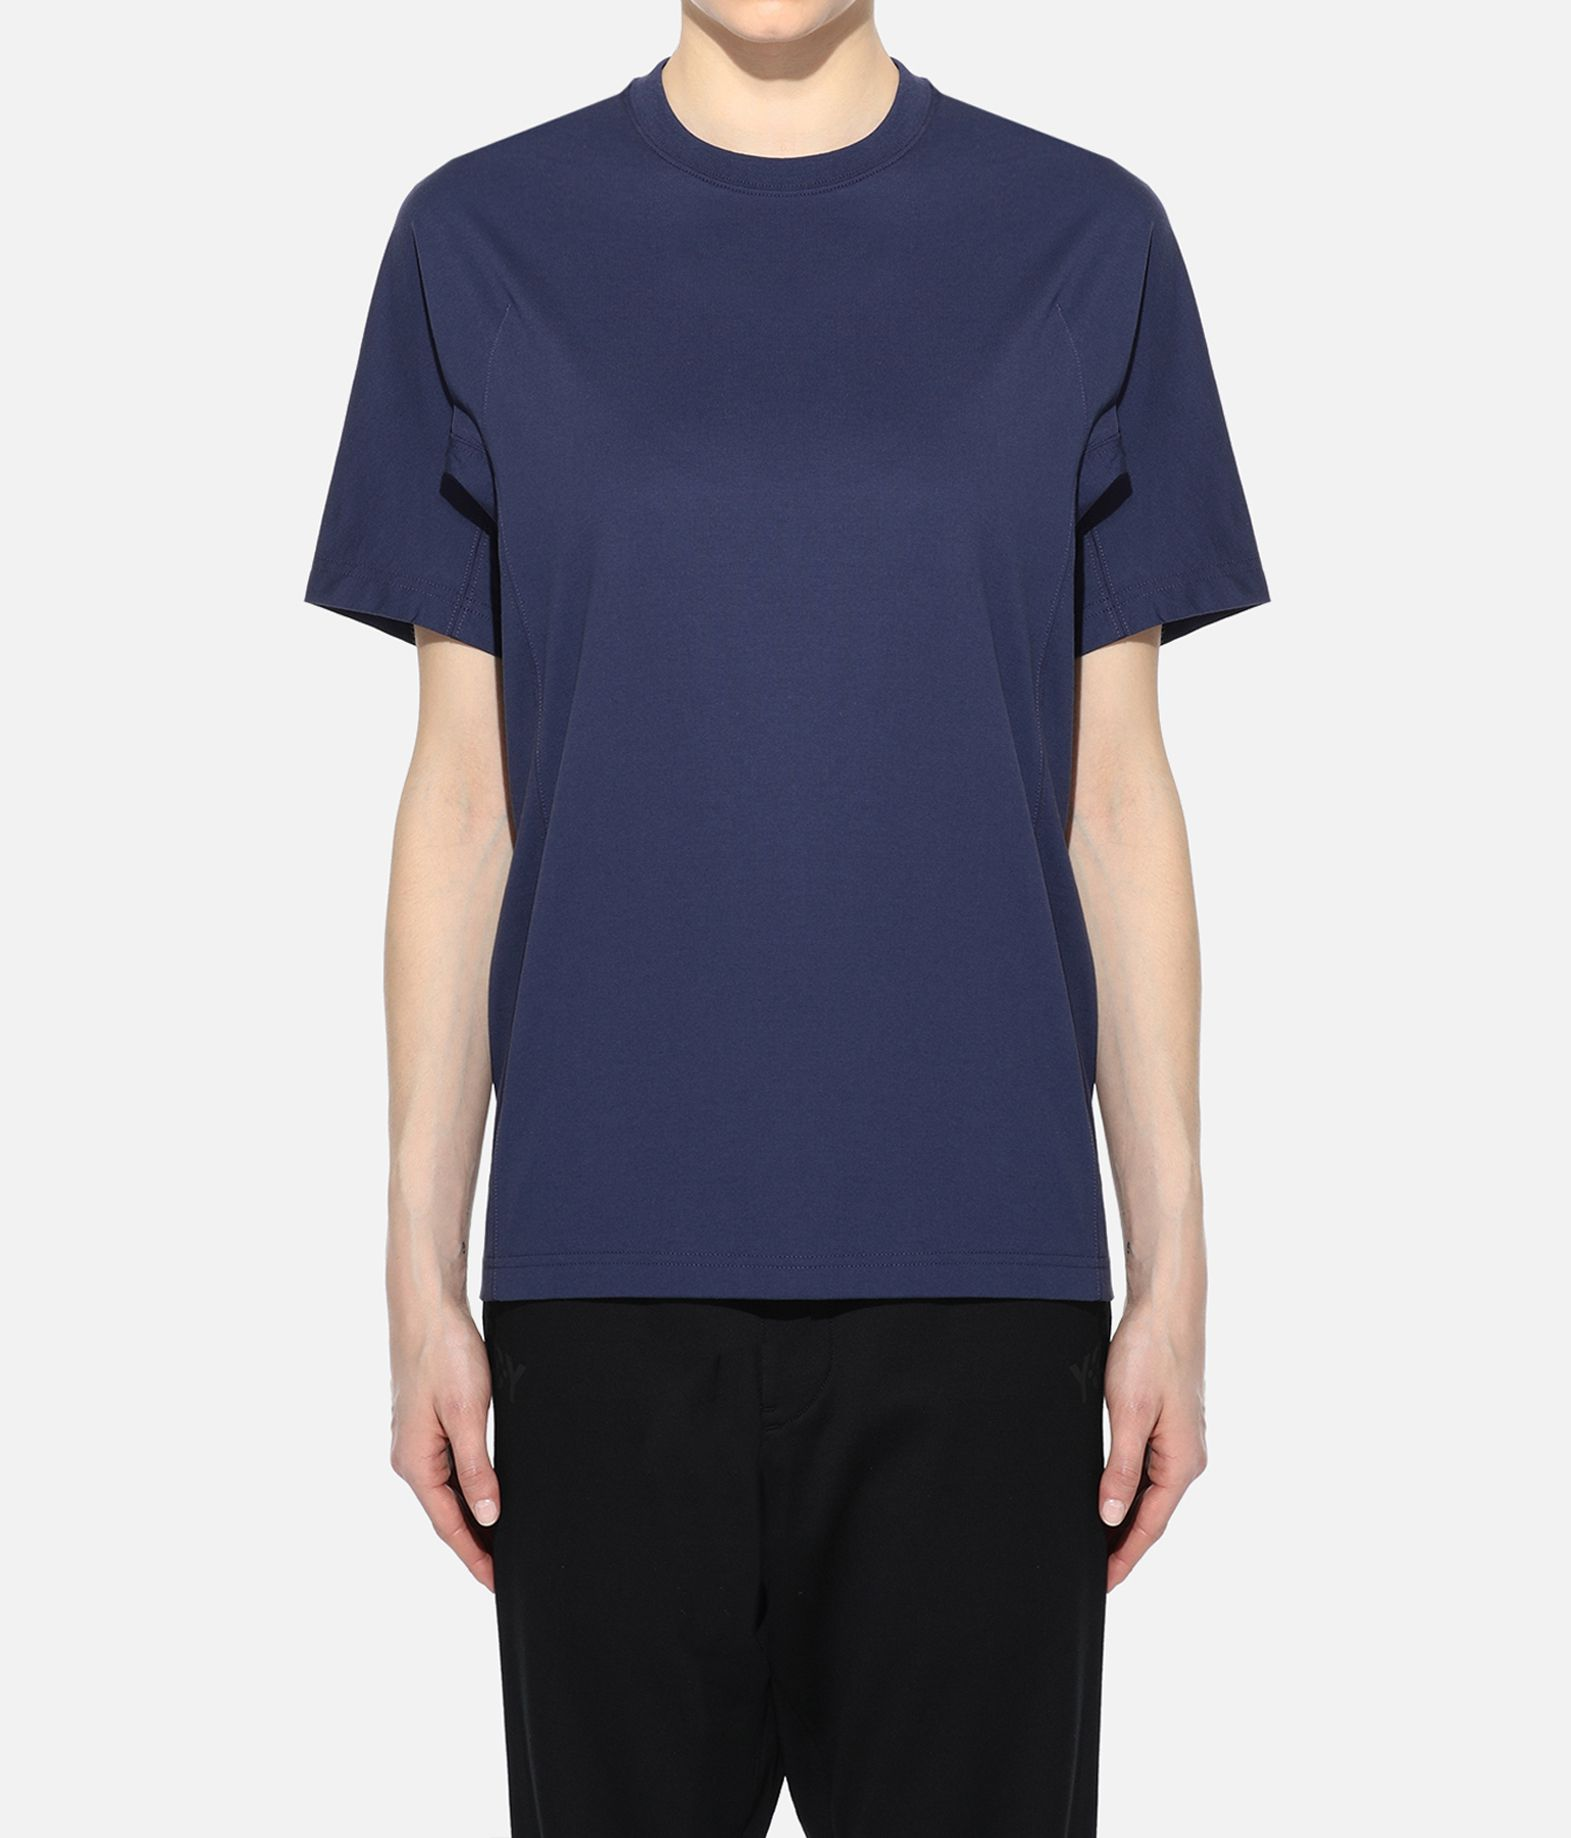 Y-3 Y-3 Classic Crewneck Tee Short sleeve t-shirt Woman r